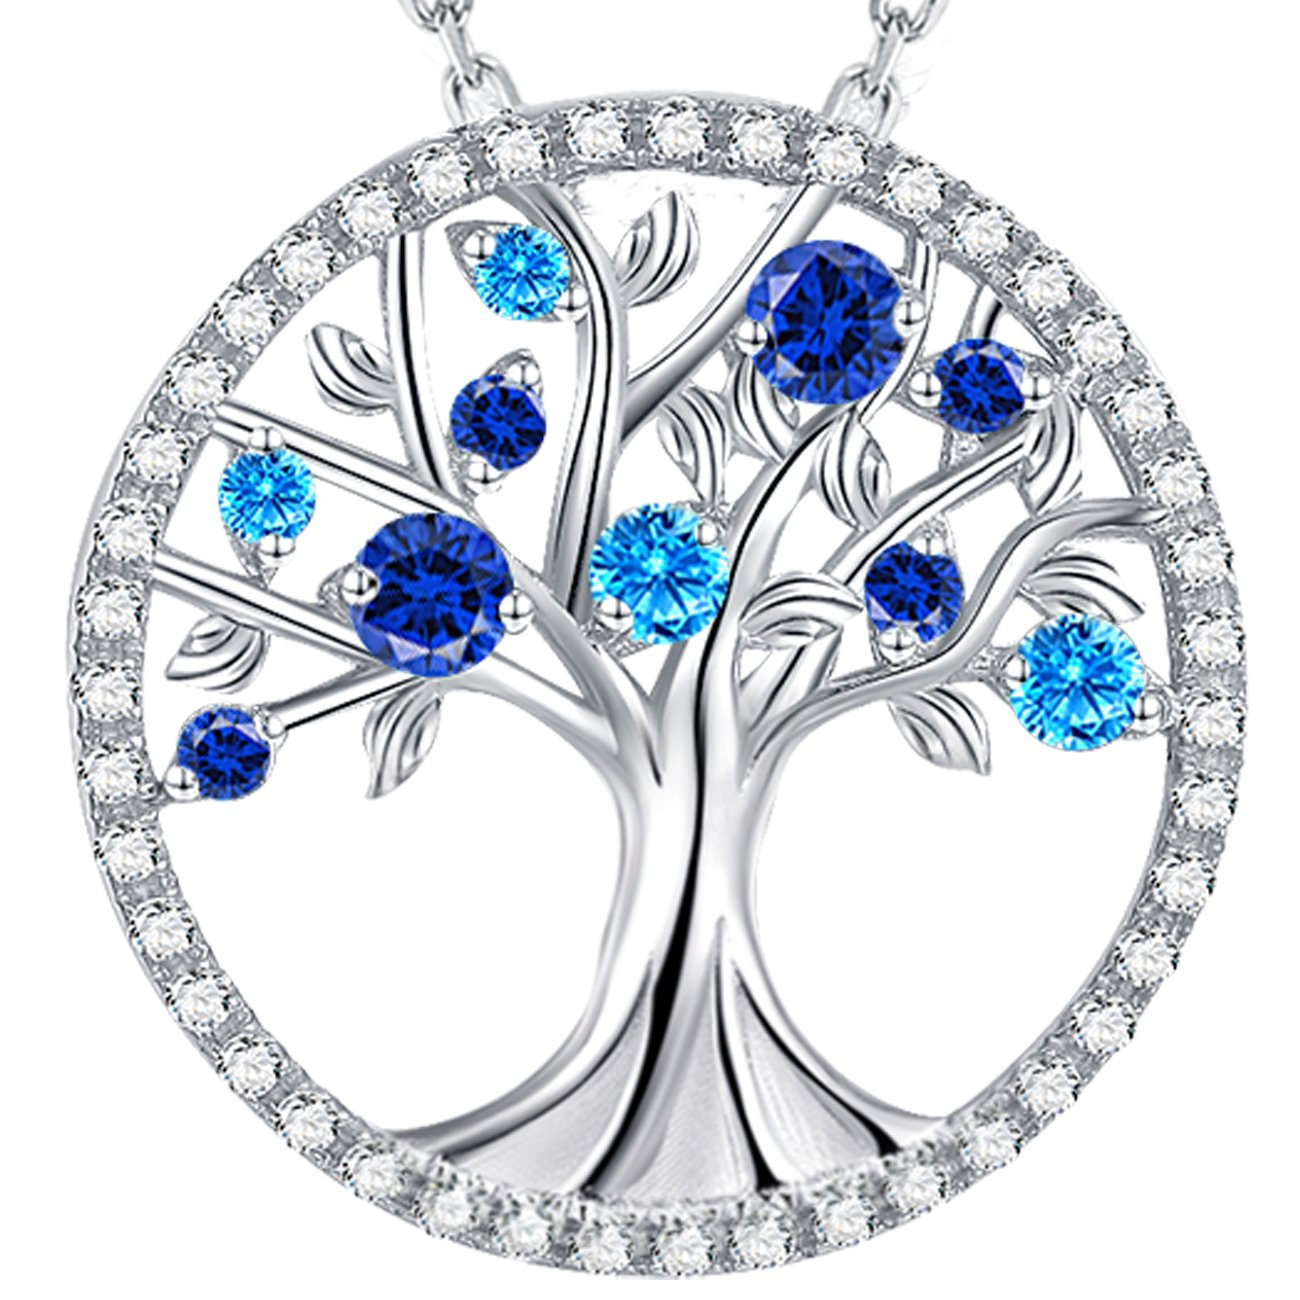 September Birthstone The Tree of Life Jewelry Created Sapphire Pendant and December Birthstone Created Blue Topaz Necklace Sterling Silver Birthday Anniversary Gifts for Her Family